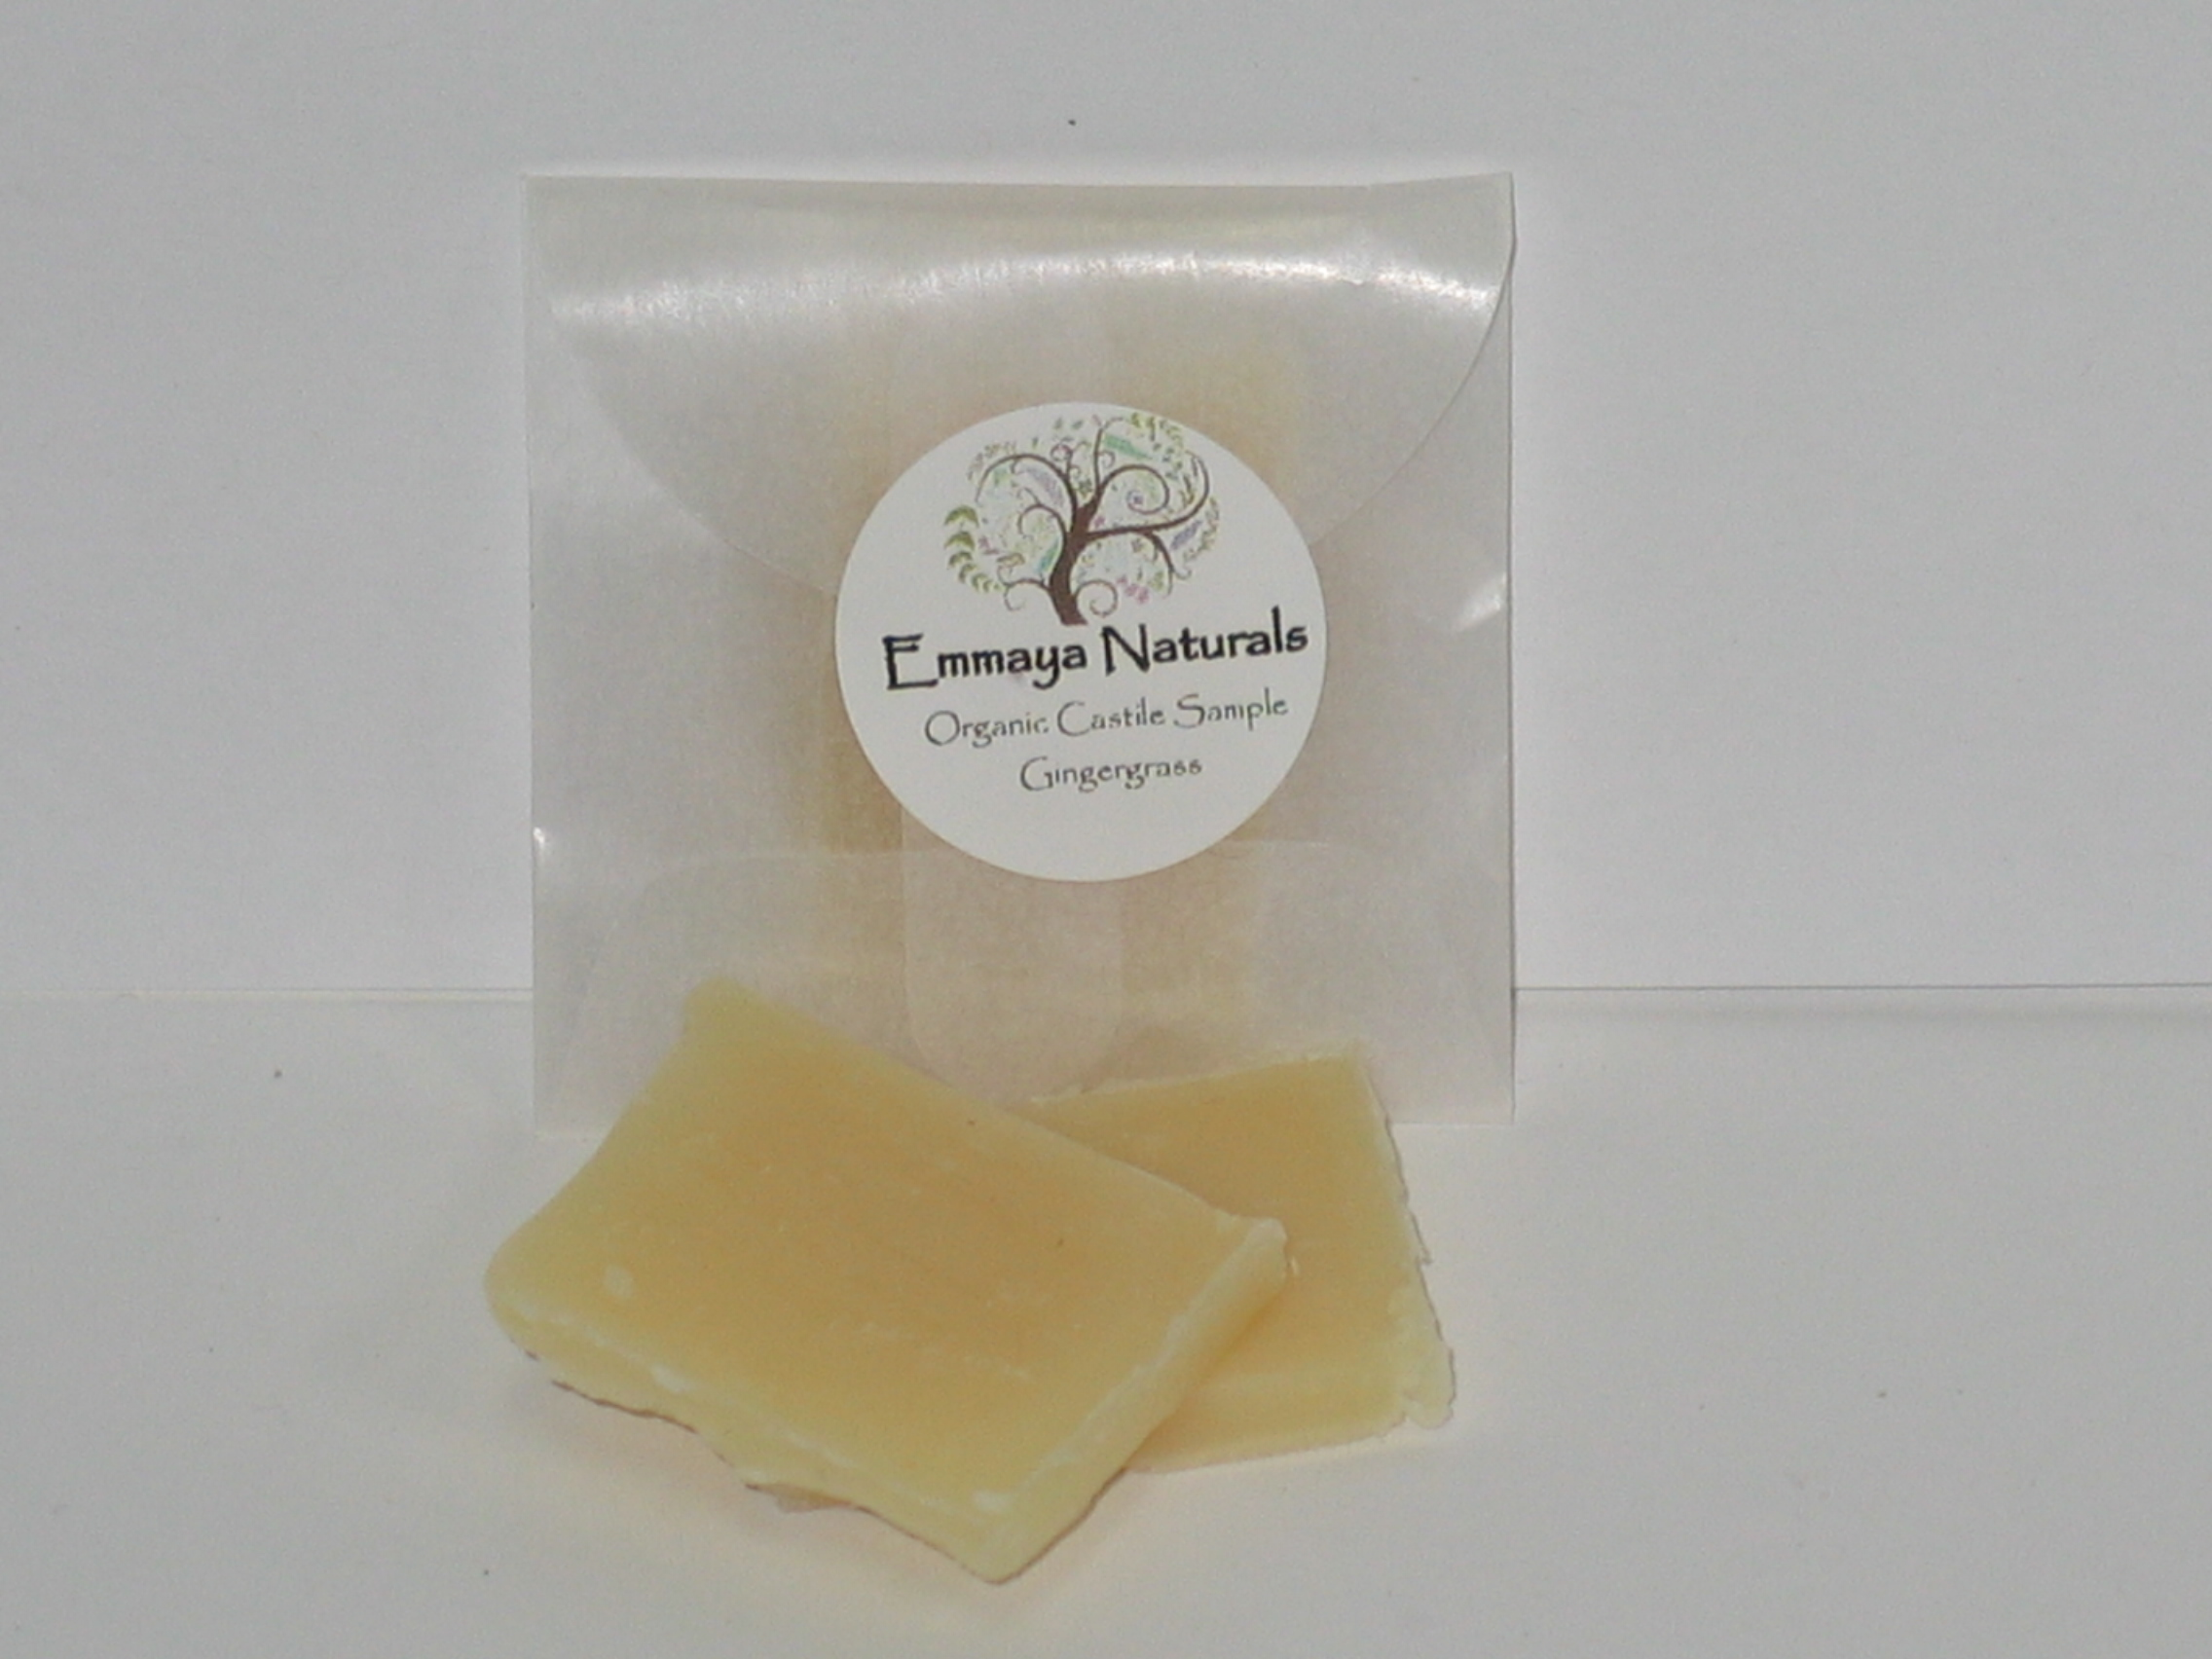 Emmaya Naturals Organic Castile Soap Samples-three dozen